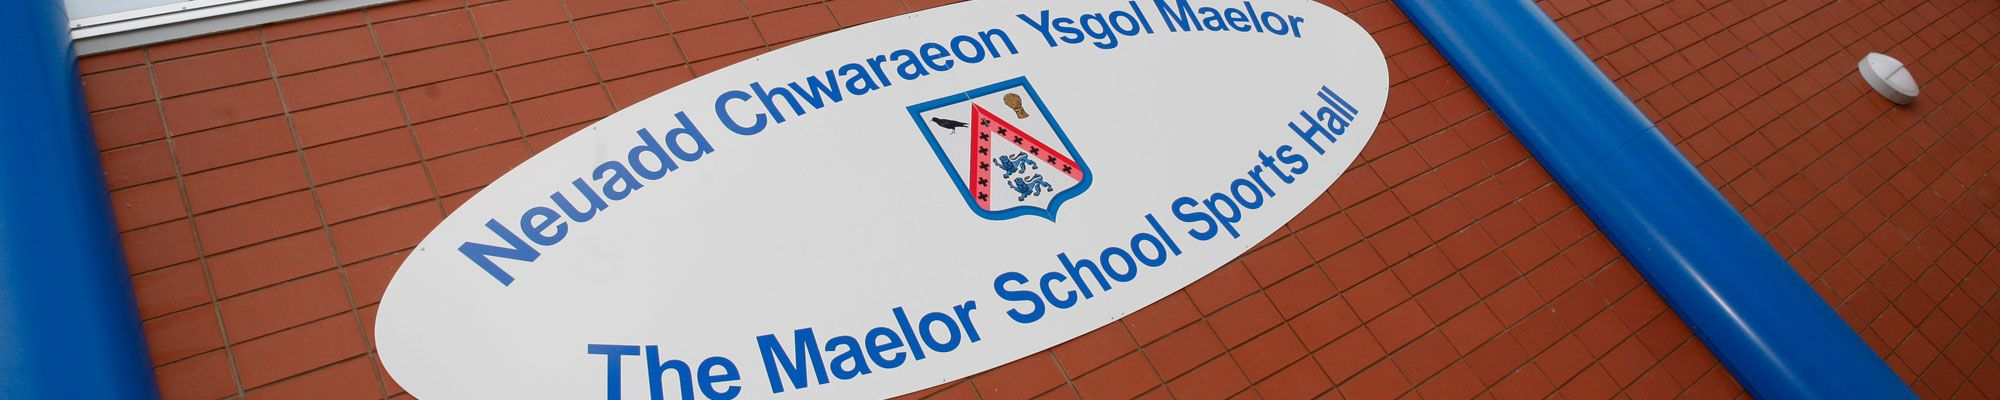 Pupils & facilities at The Maelor School